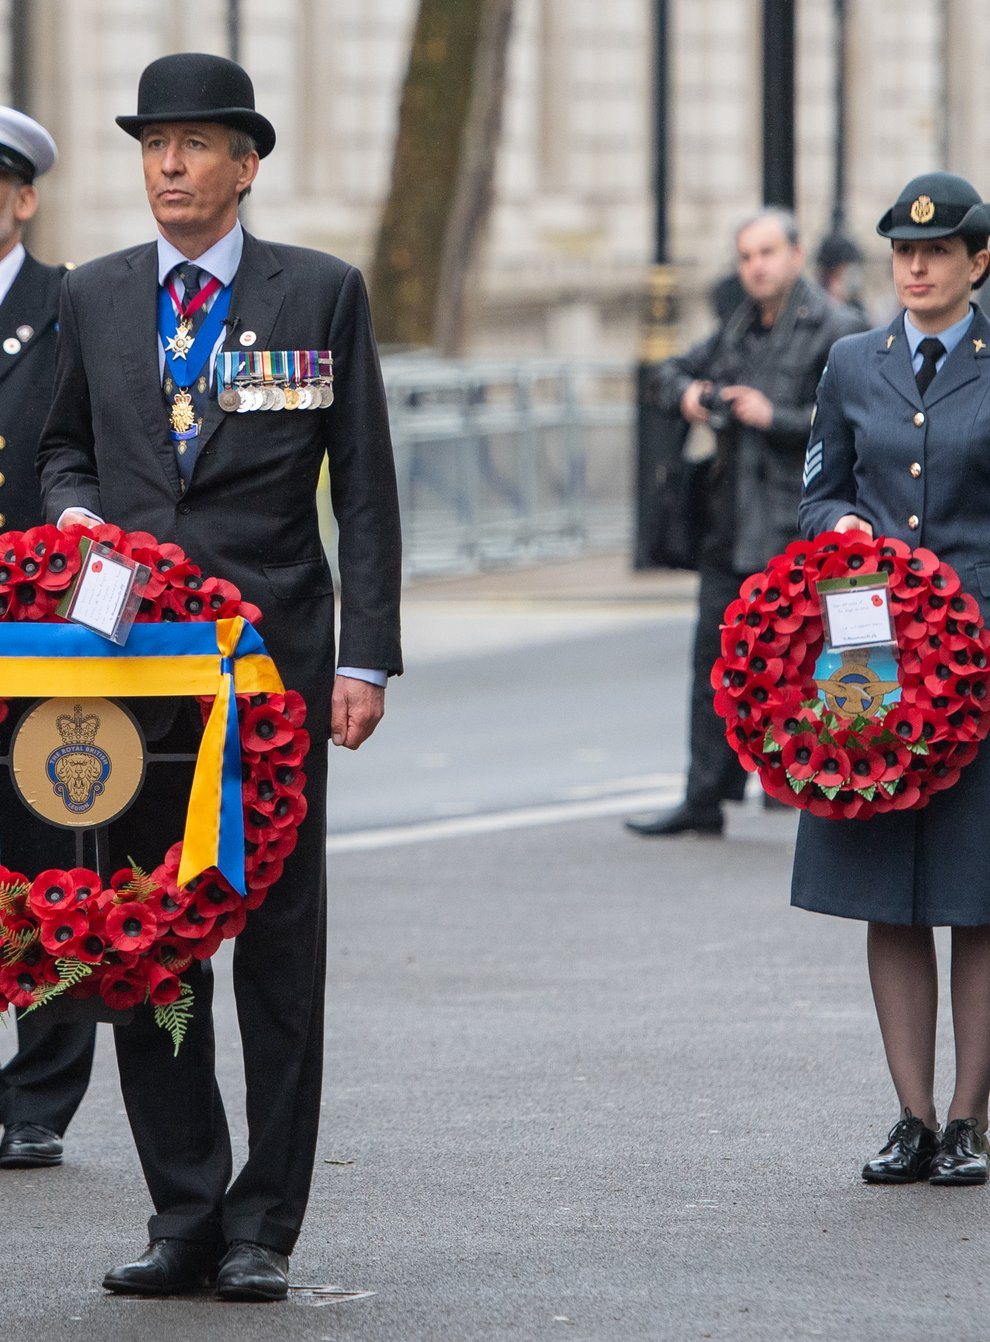 National president of the Royal British Legion Lieutenant General (Retired) James Bashall, centre, and members from the Royal Navy, the British Army, the Royal Air Force and the Merchant Navy at the Cenotaph in London (Dominic Lipinski/PA)